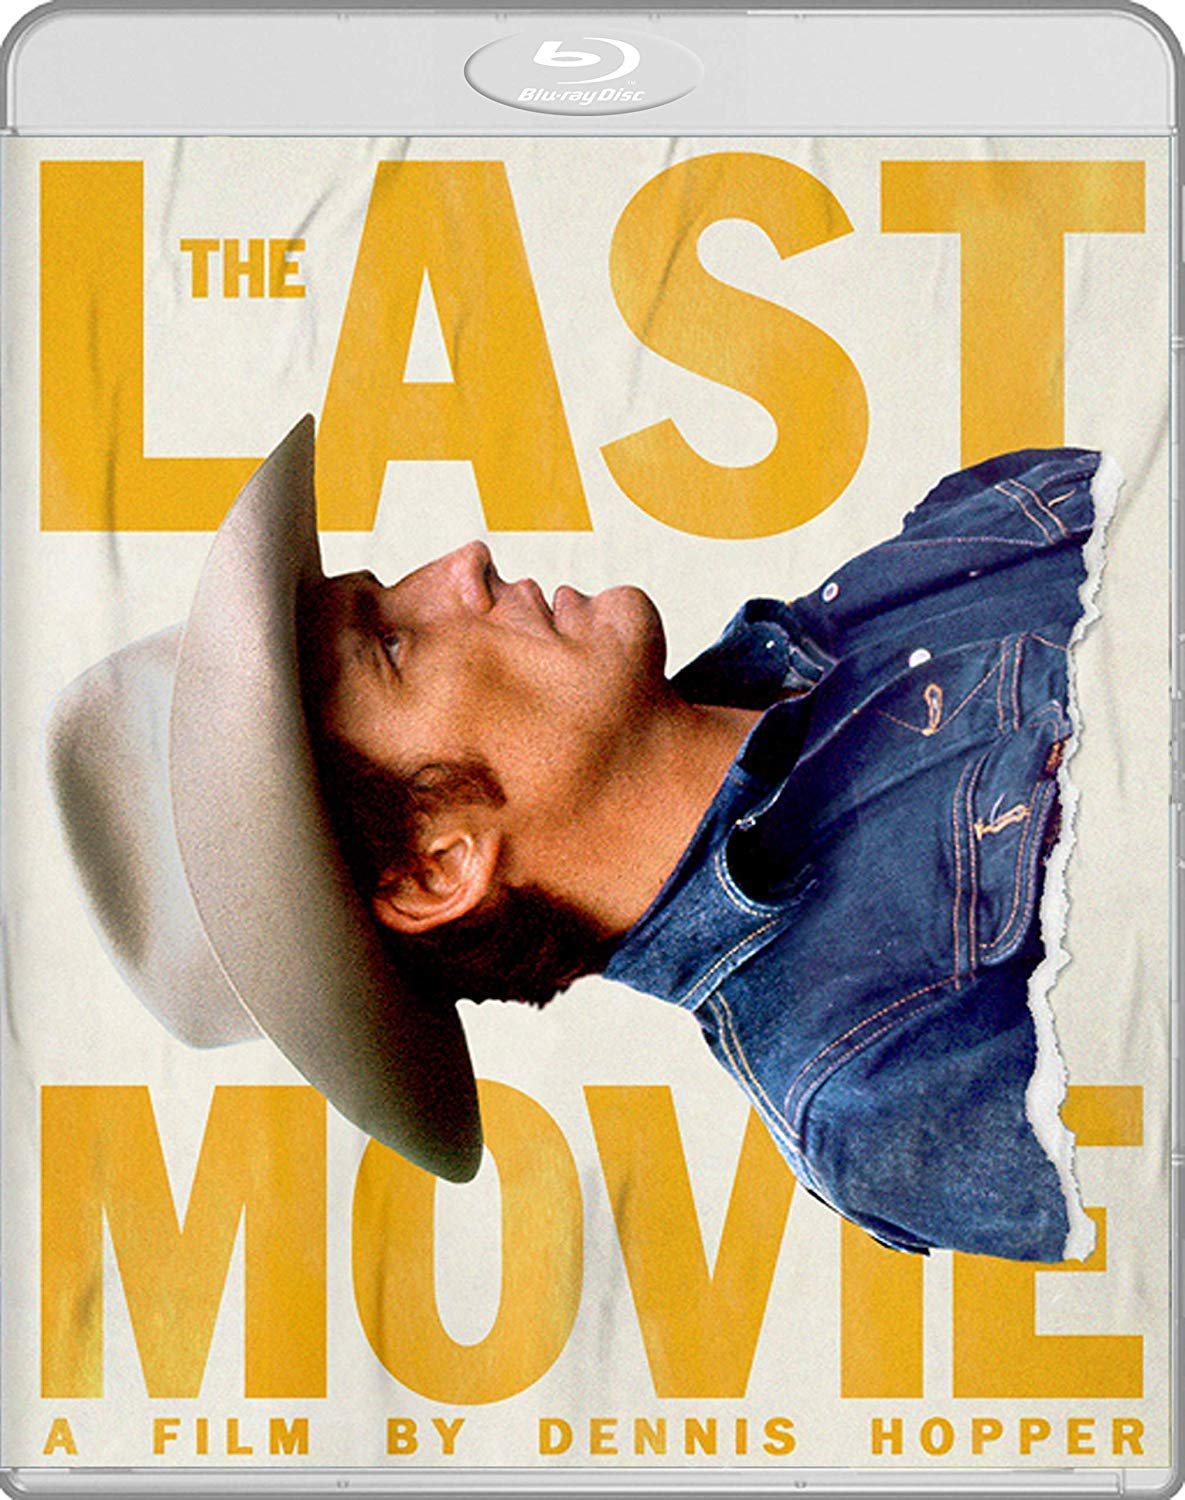 The Last Movie - Buy the Blu-ray at Amazon